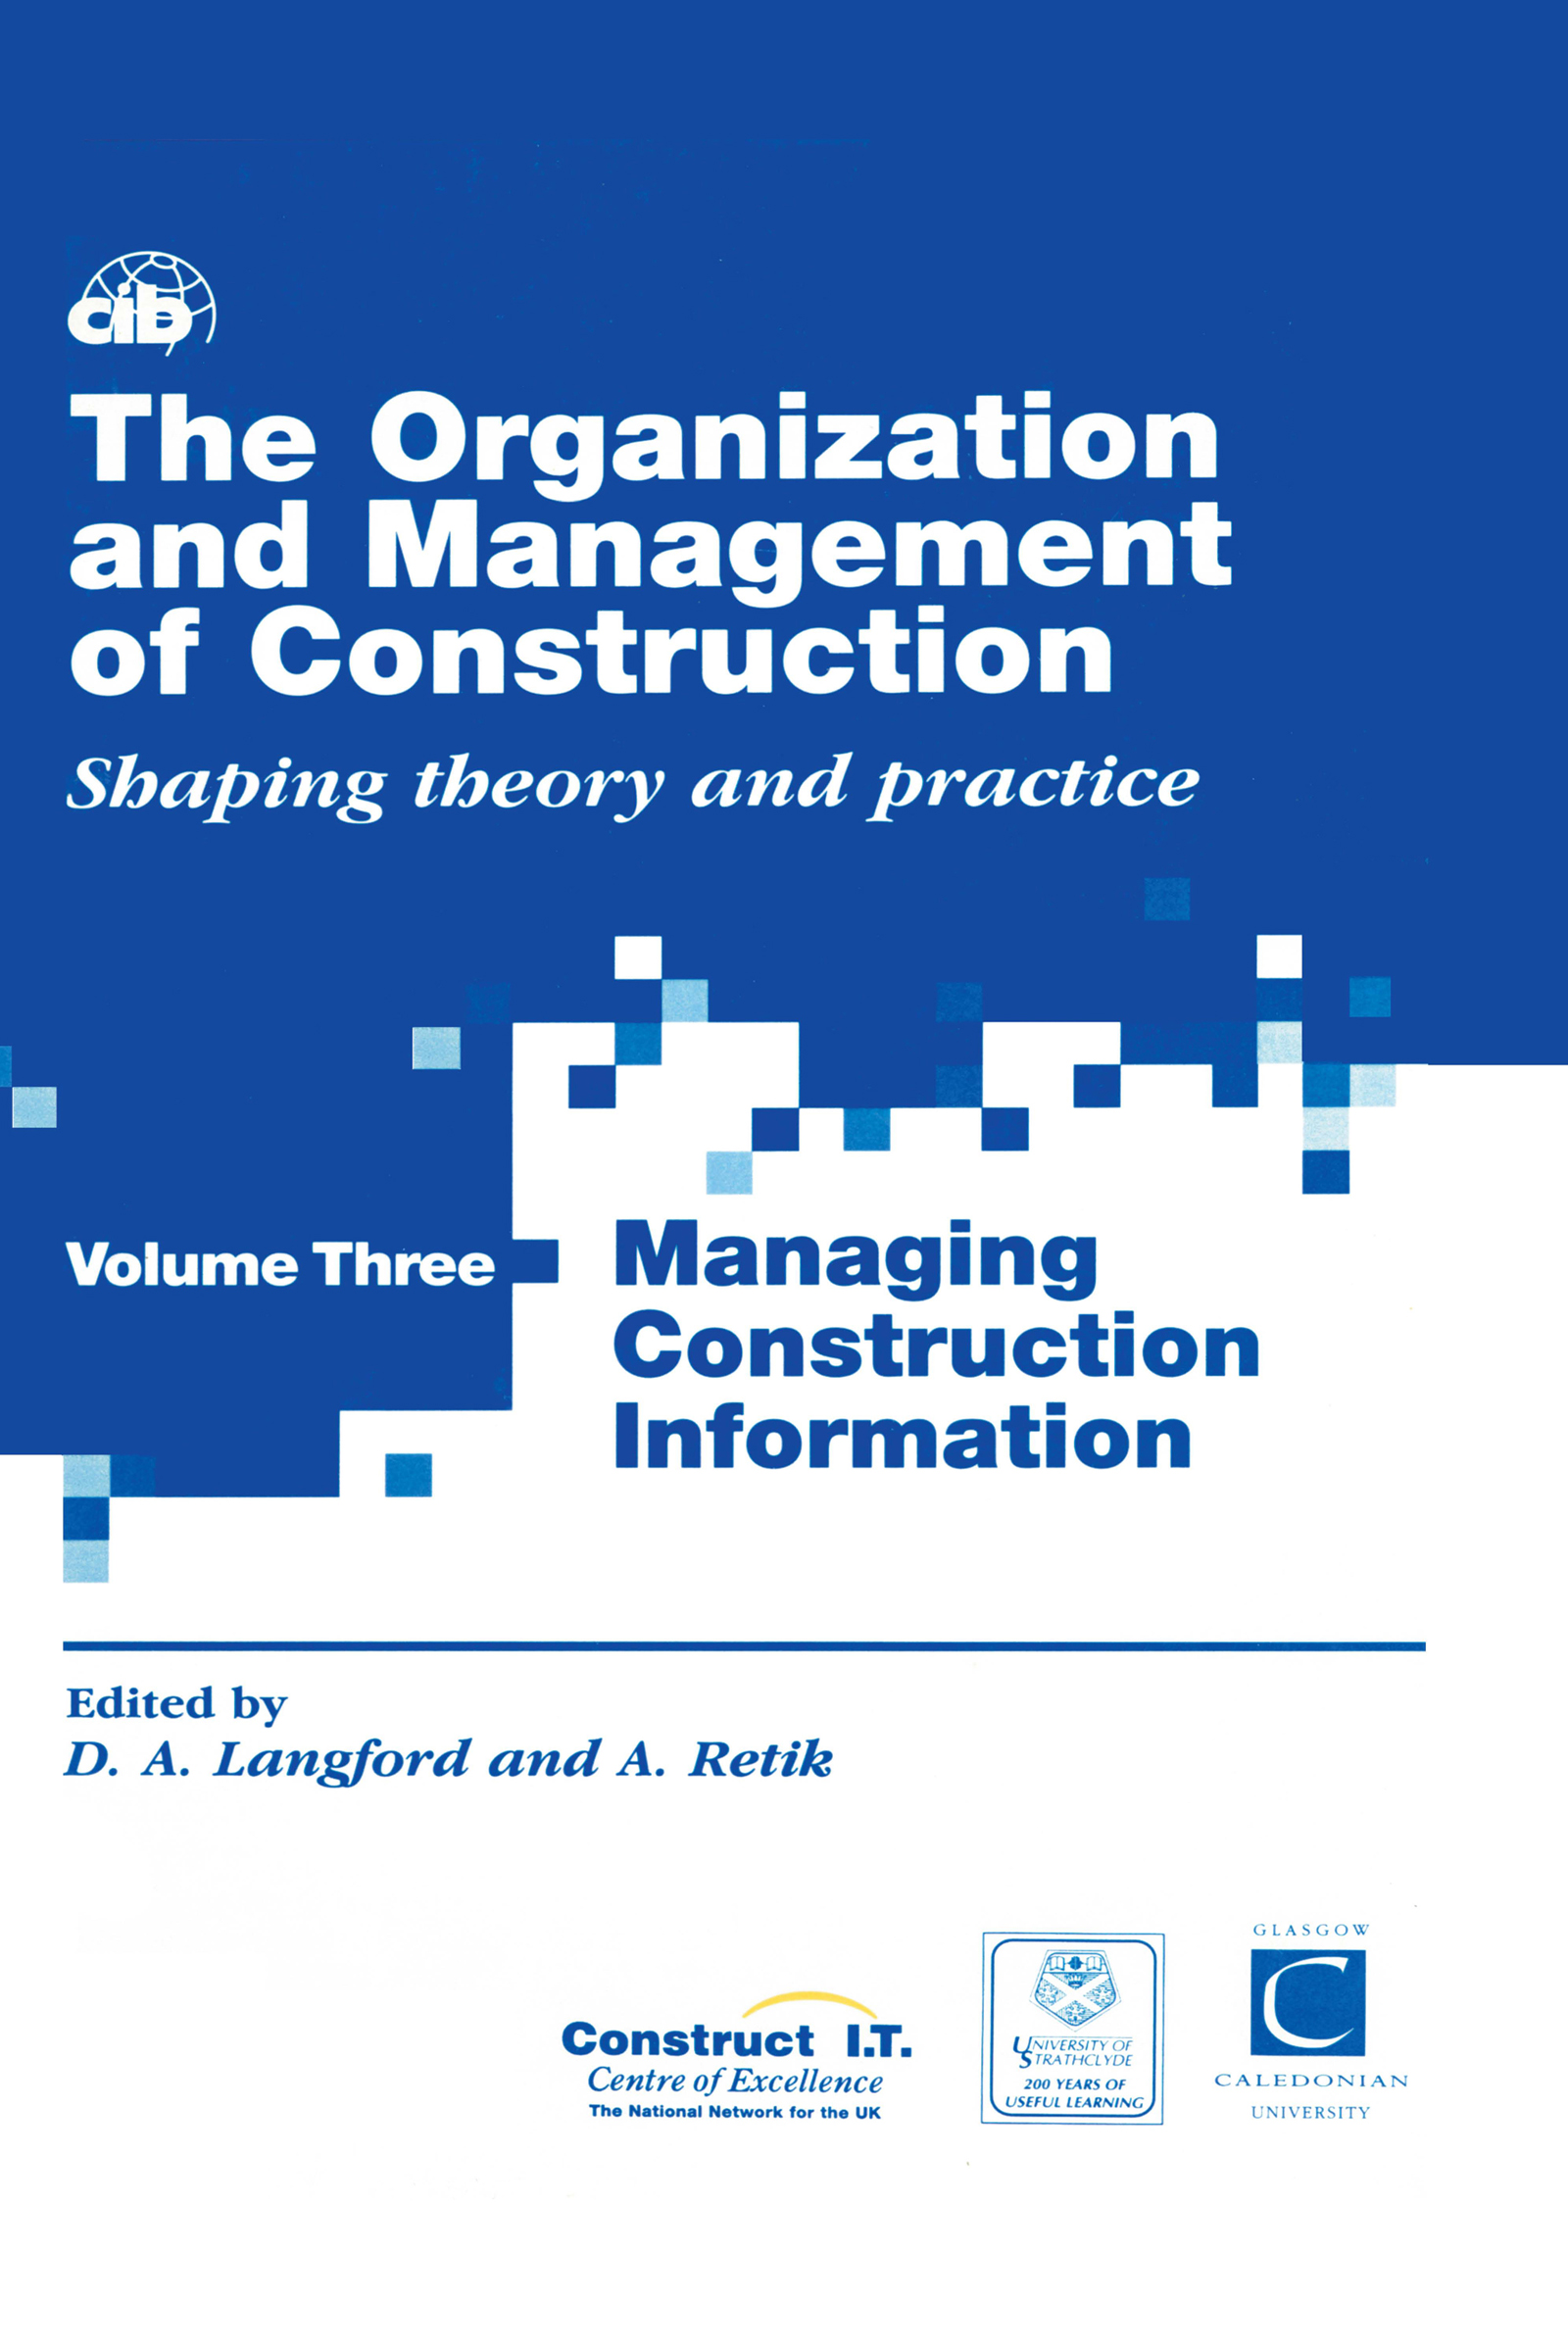 The Organization and Management of Construction